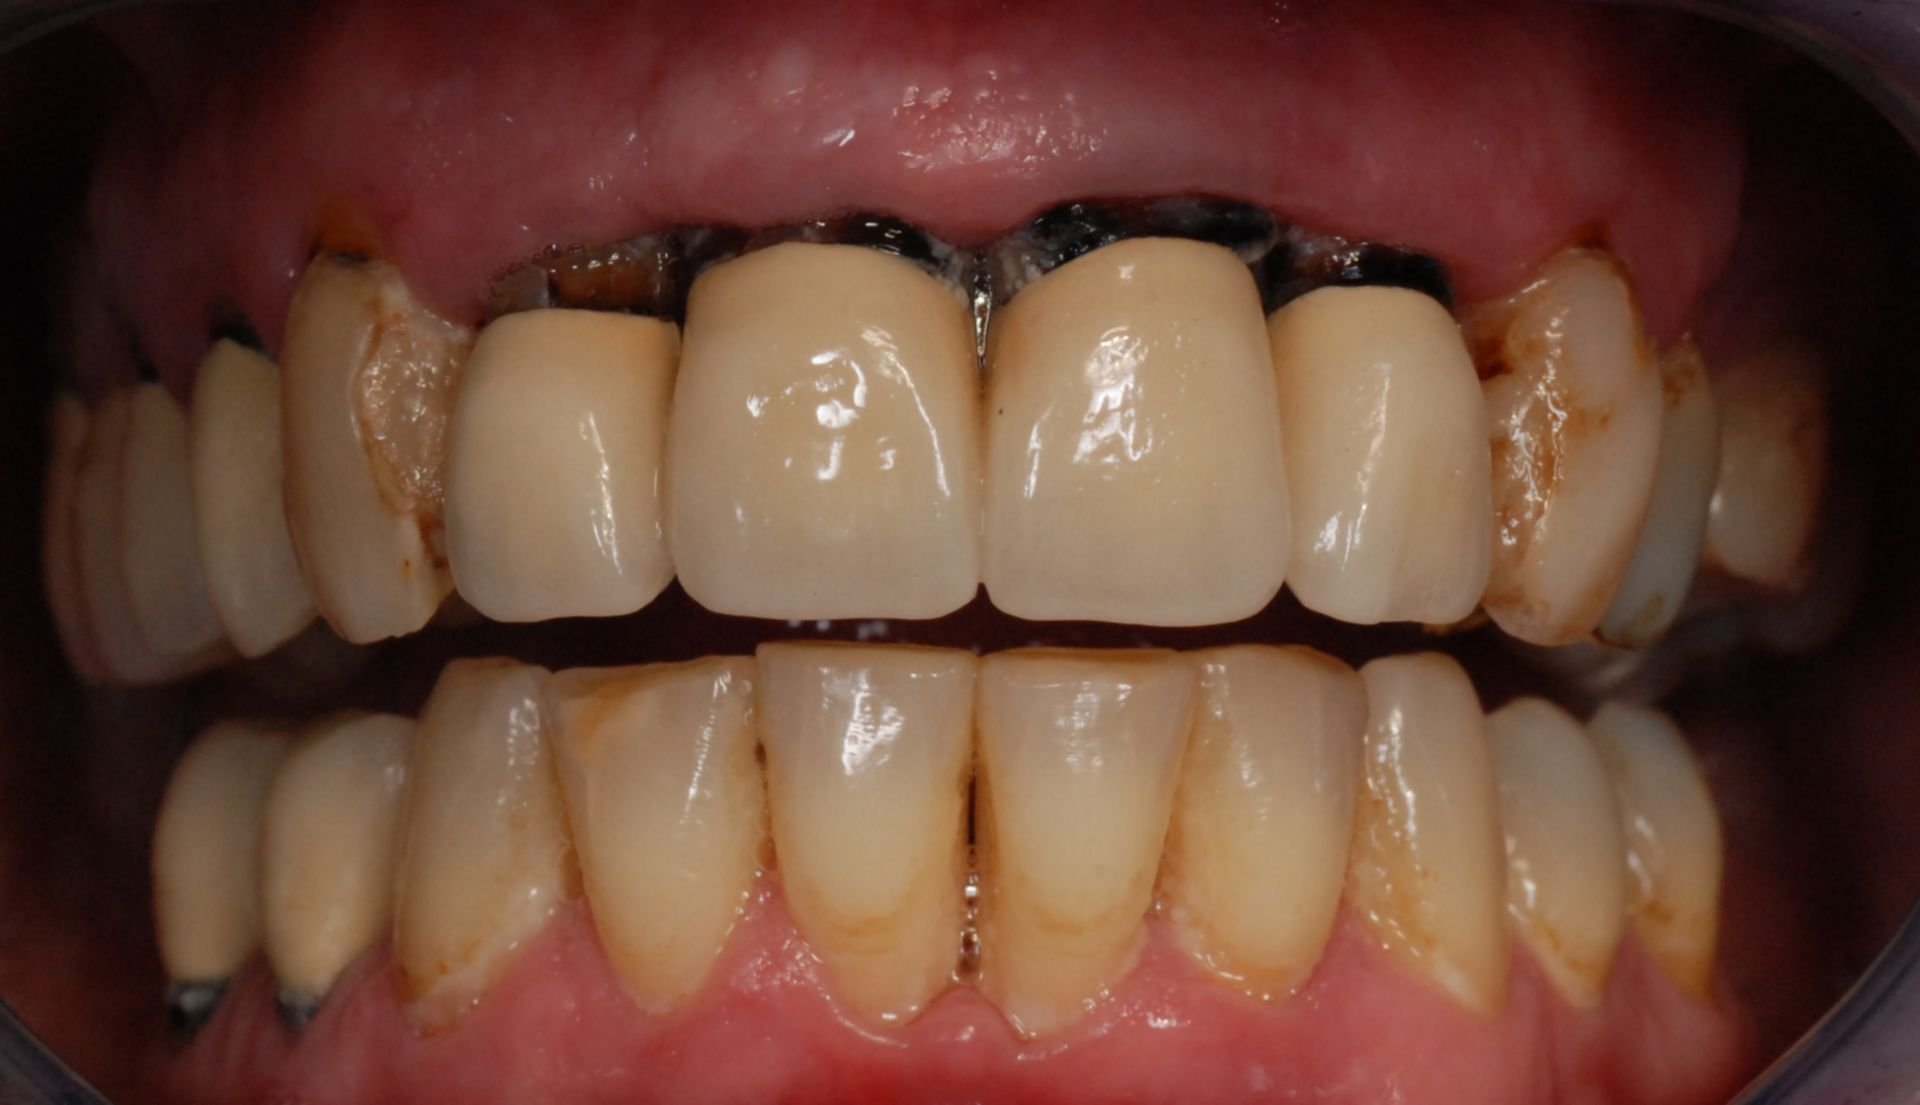 Exposed crown edges after gingival resession